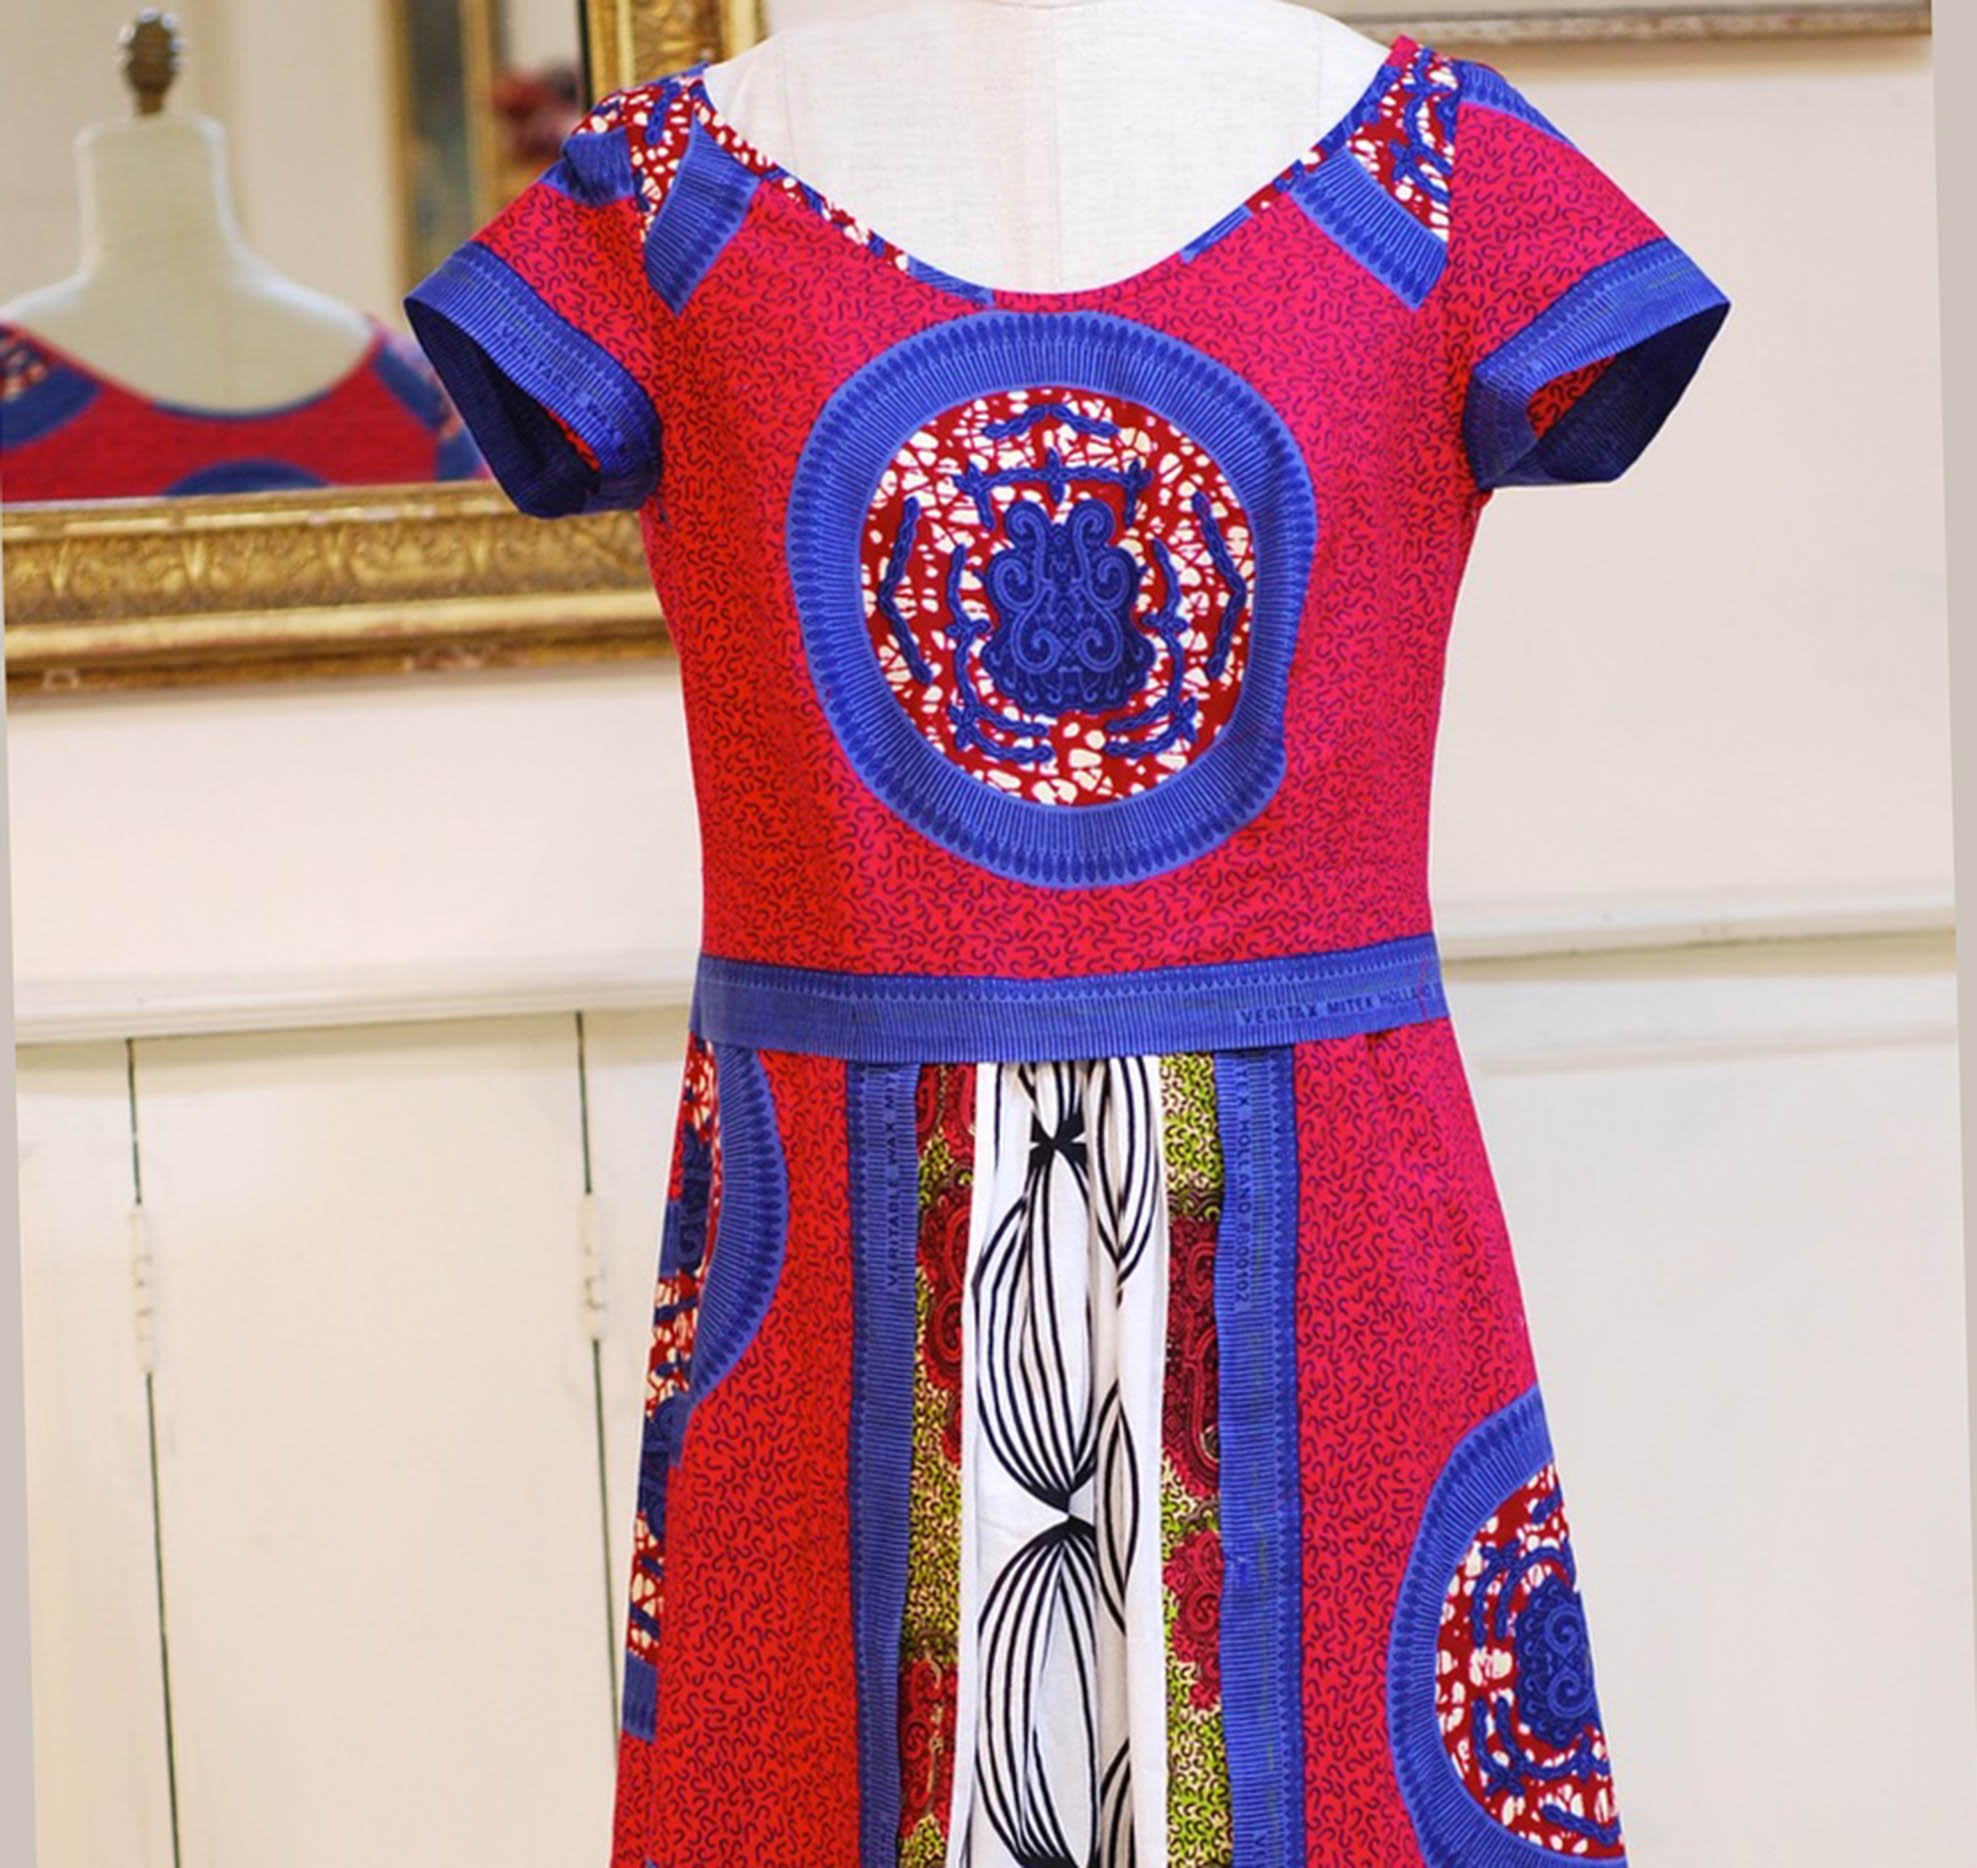 Marrekech Dress  - multi cotton dutch wax African Prints